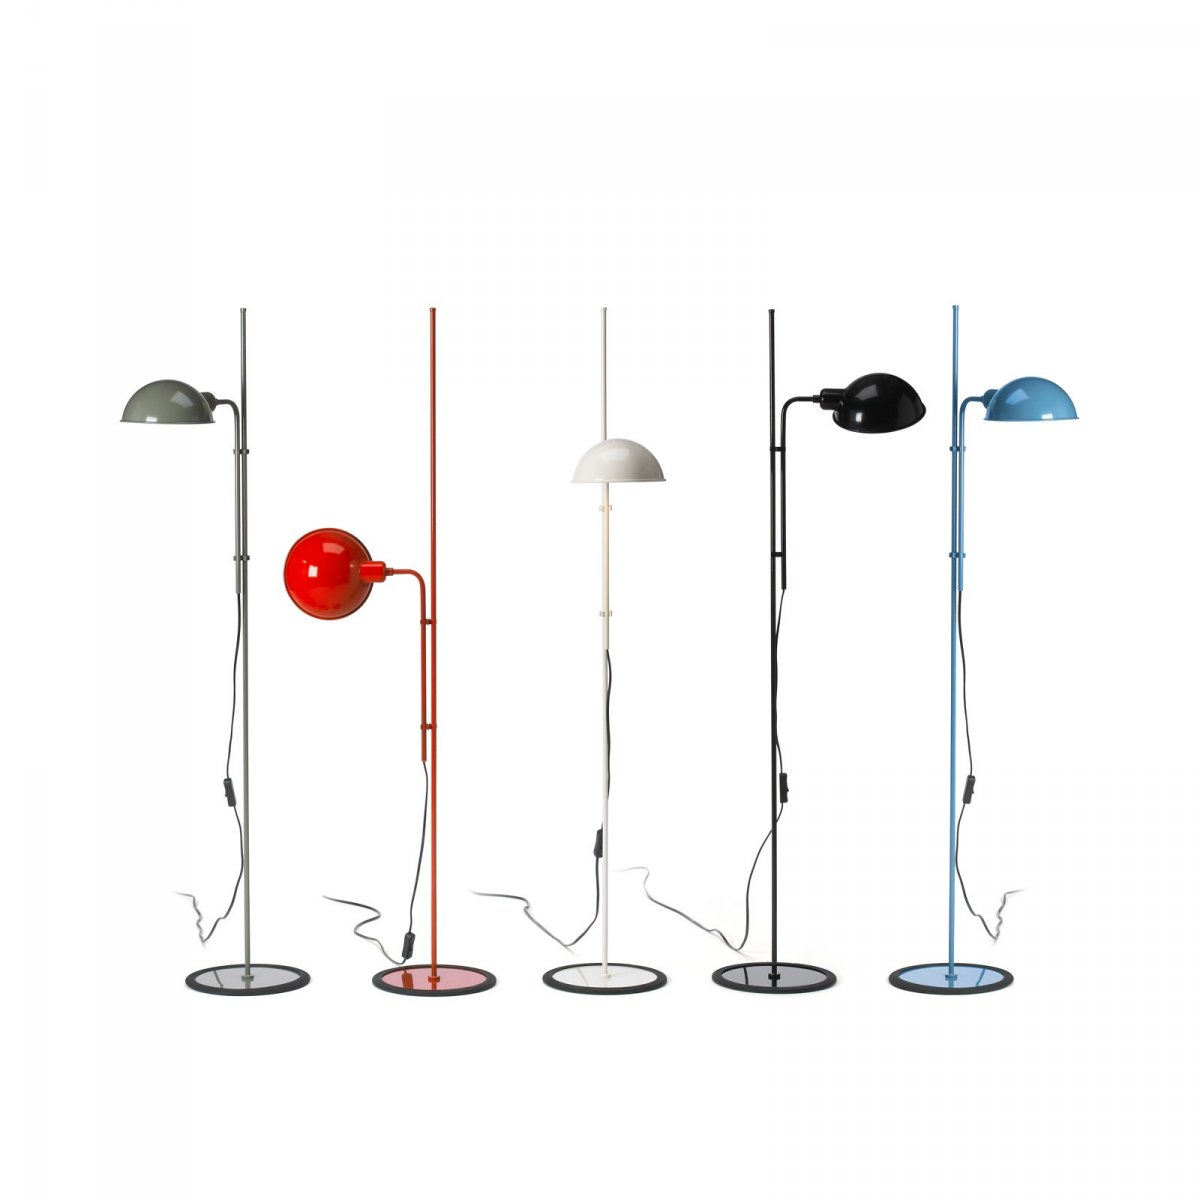 Funiculí Floor lamps.